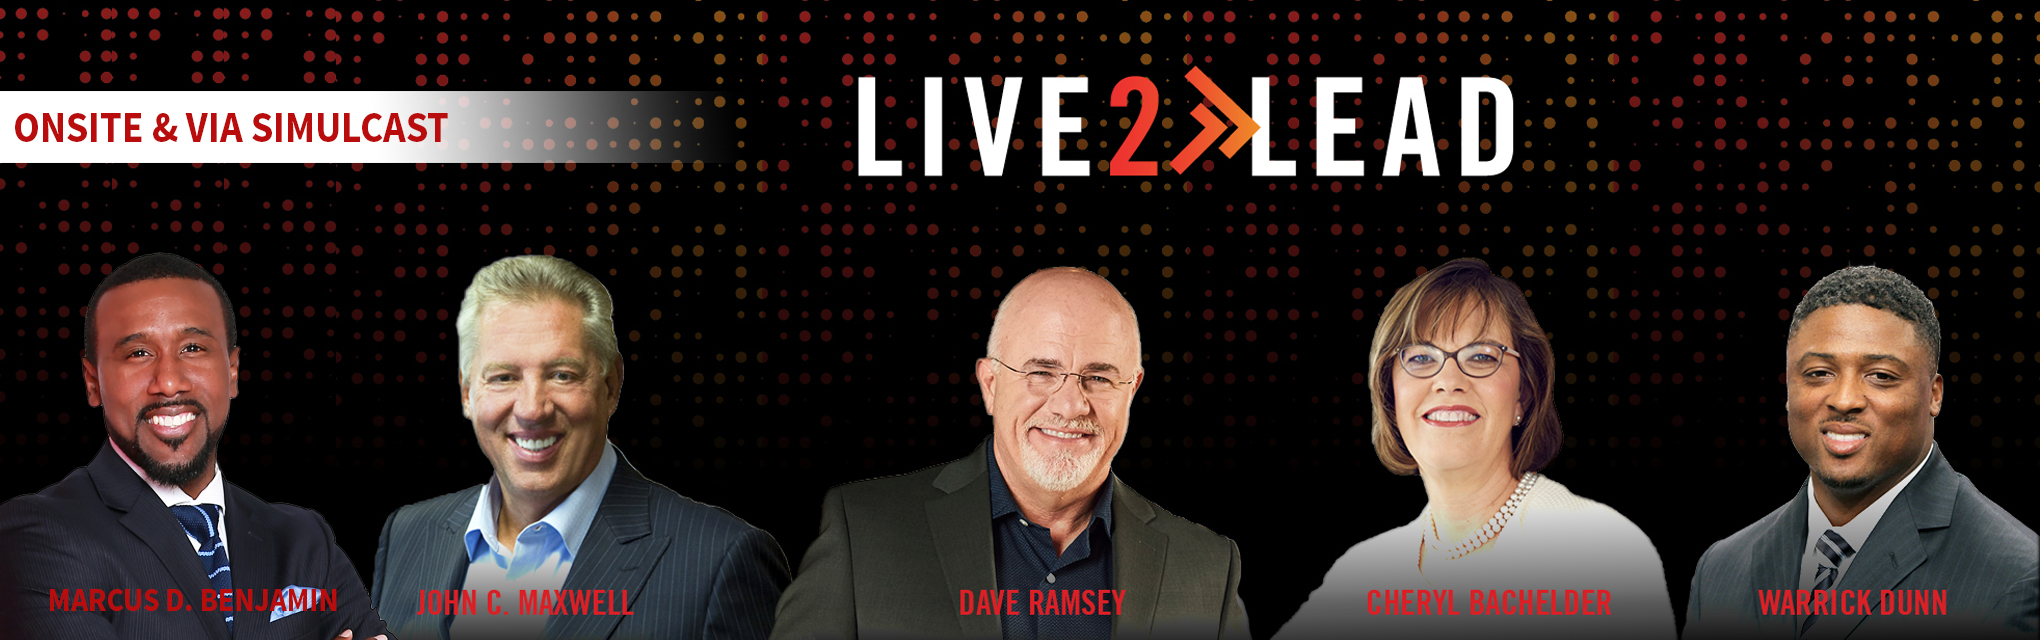 Live 2 Lead Banner